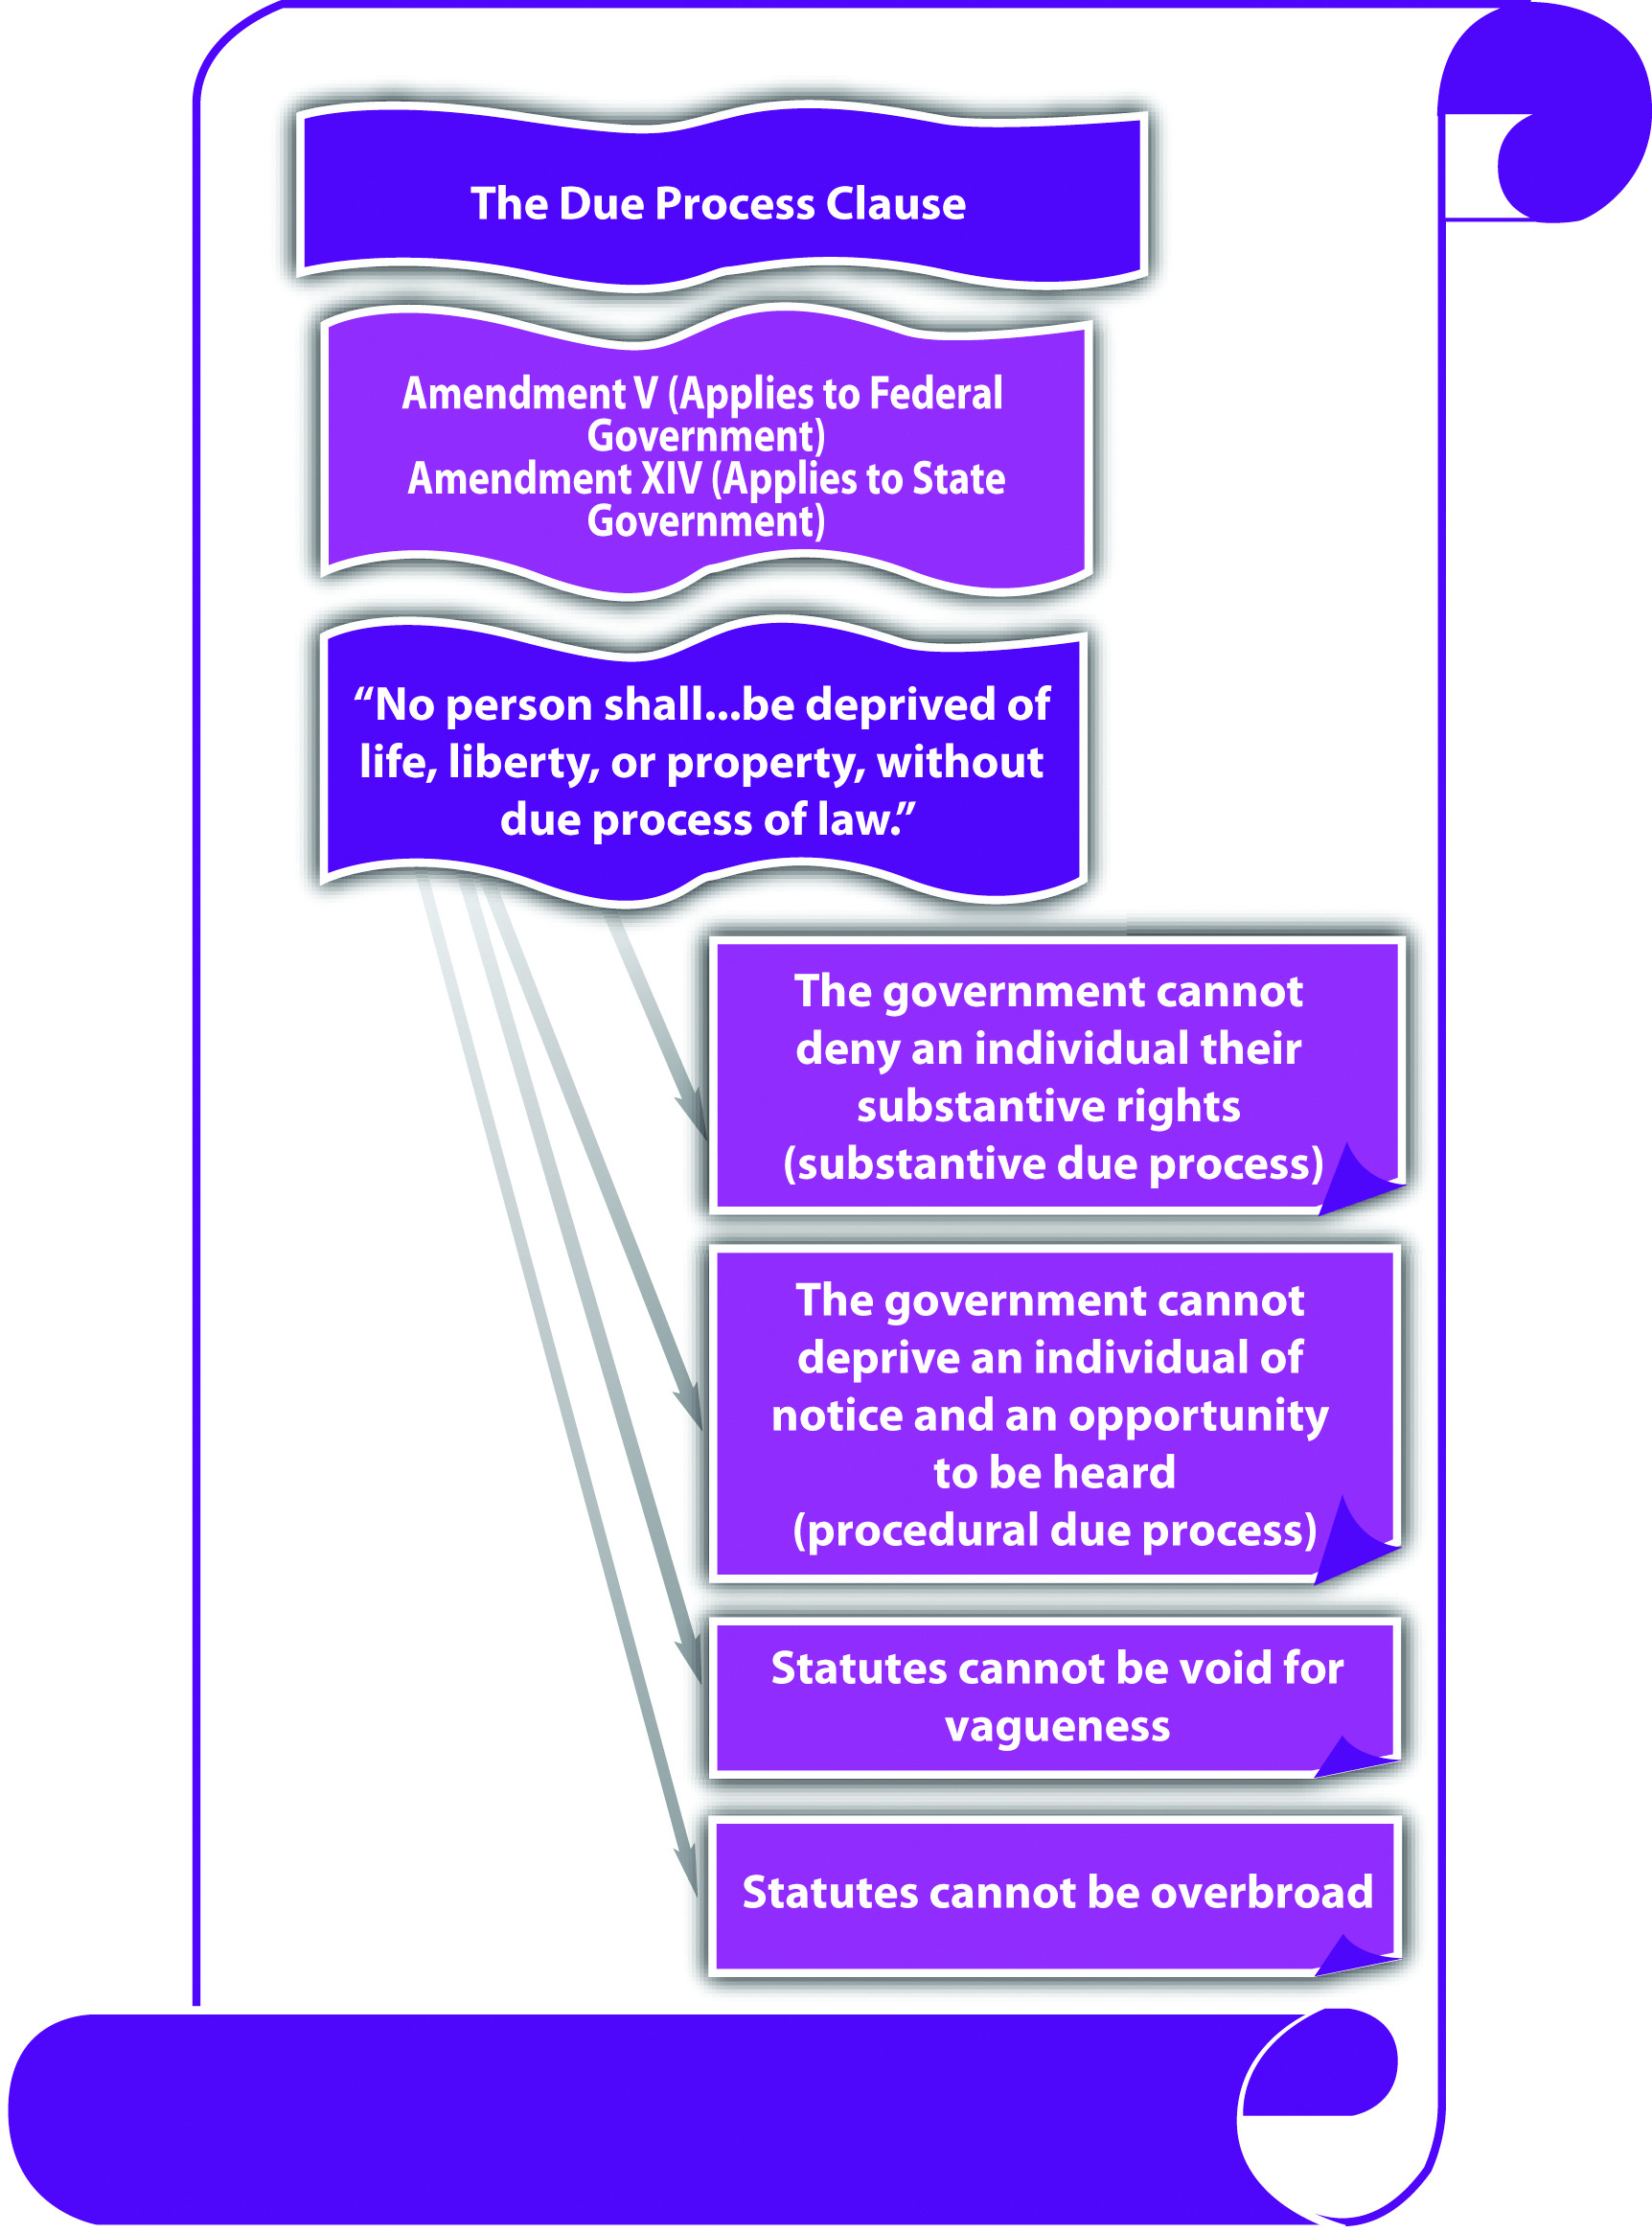 The Due Process Clause